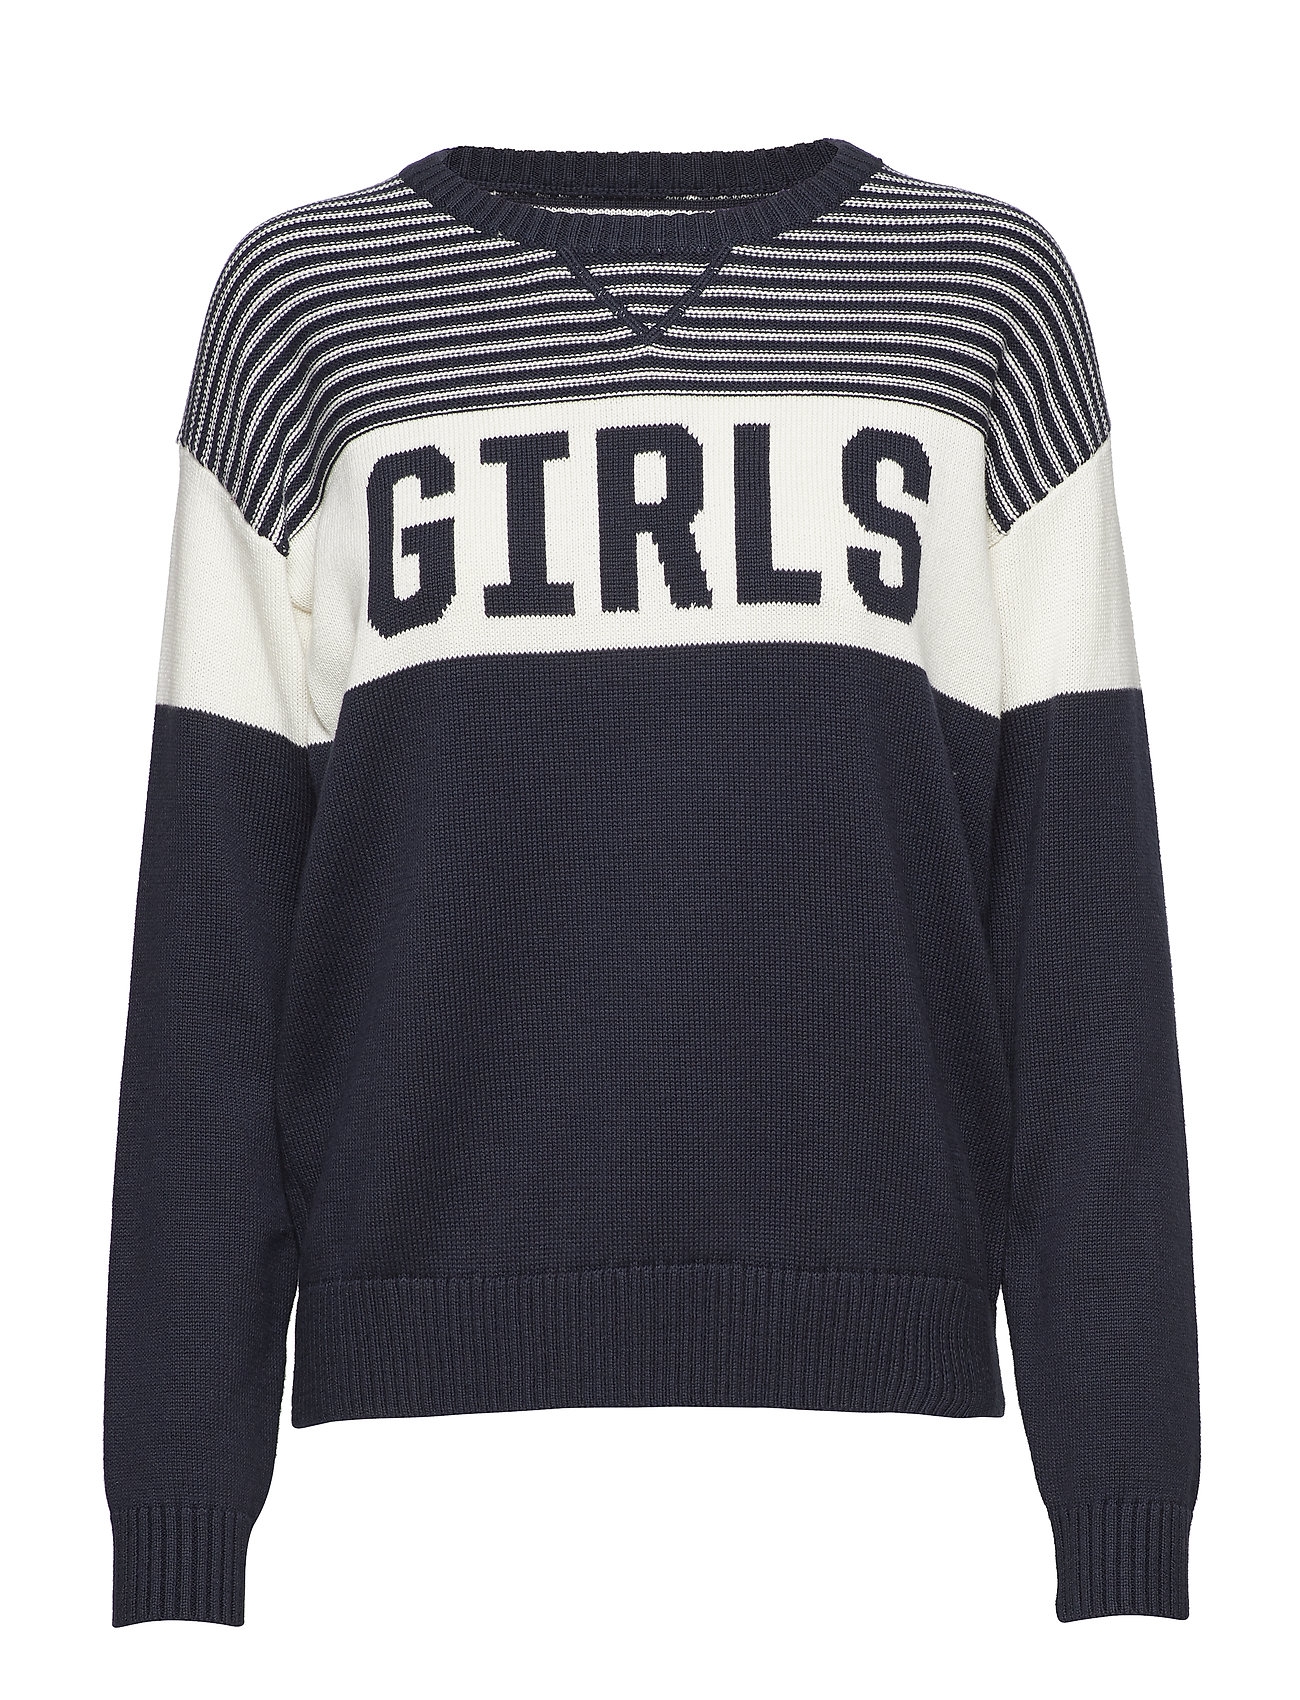 GANT Rugger R1. GIRLS CREW - MARINE